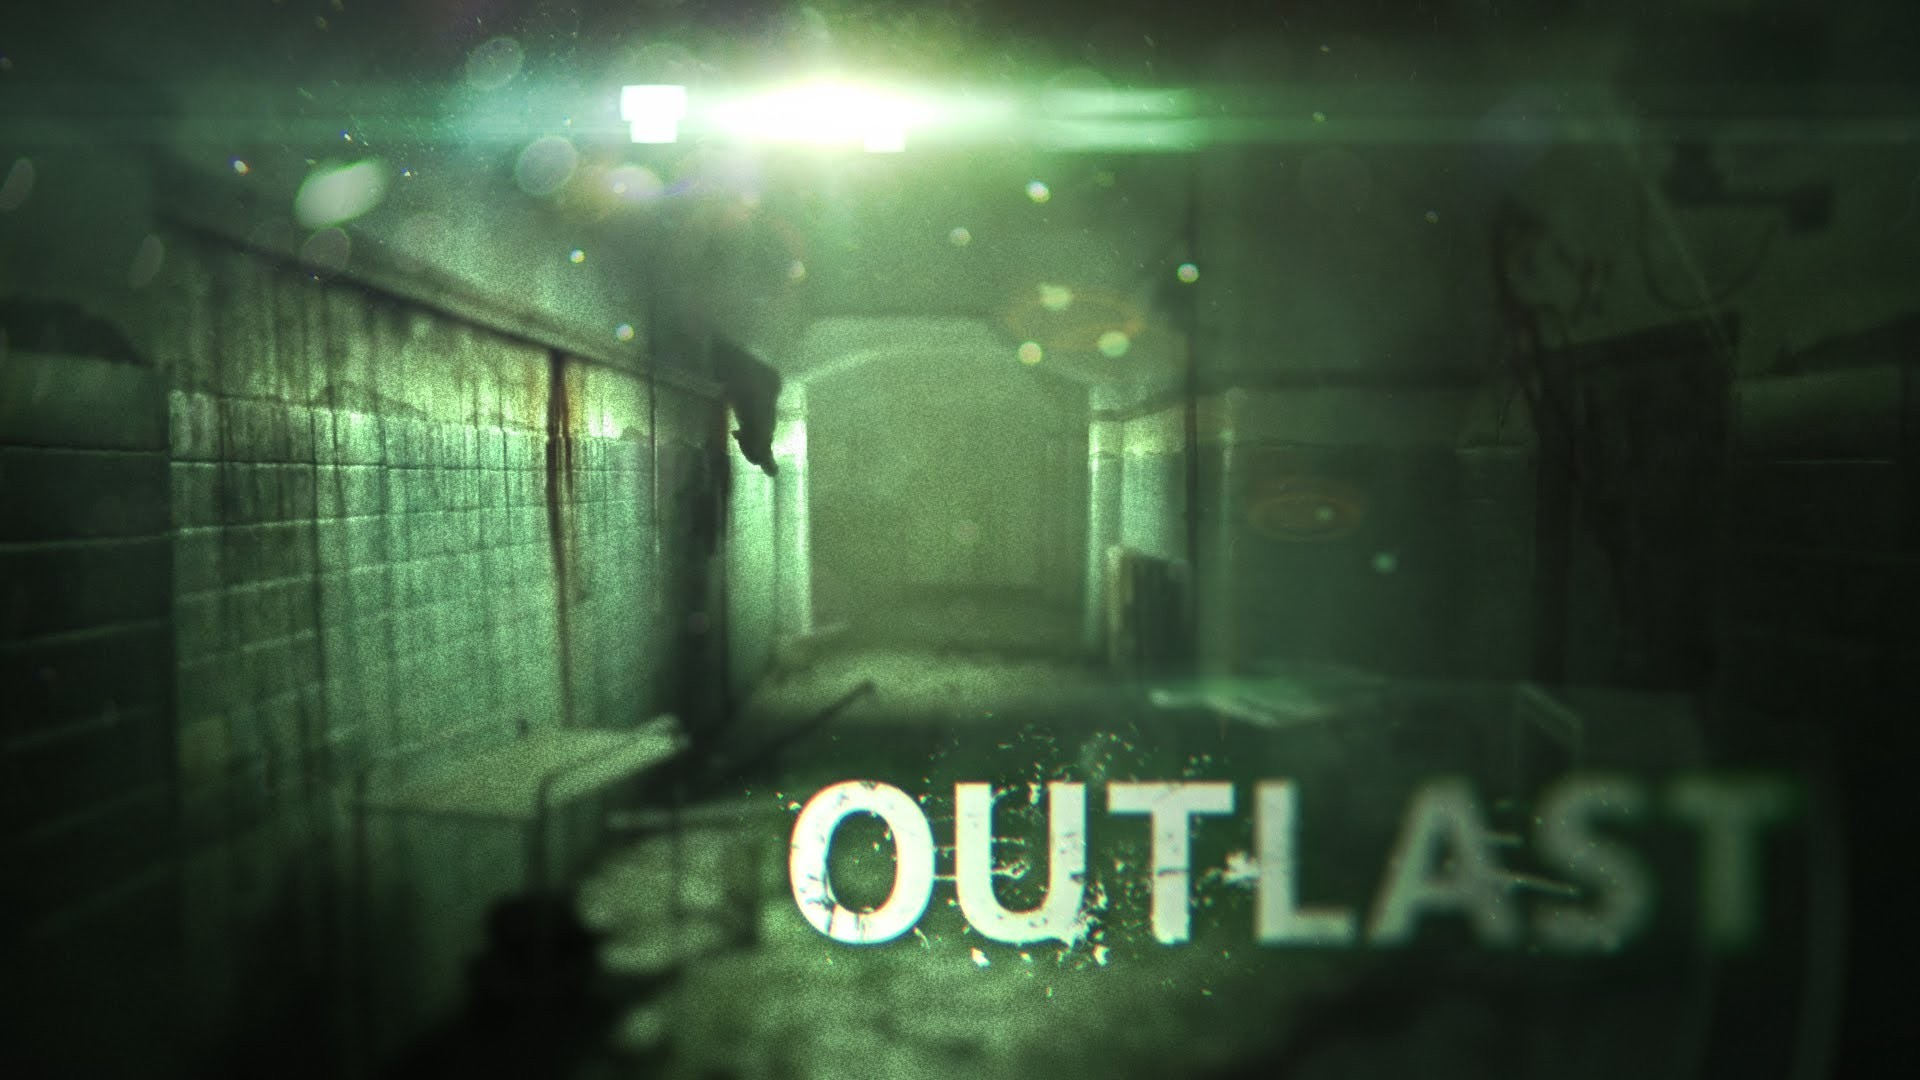 Outlast Wallpapers HD 42XD682   4USkY 1920x1080